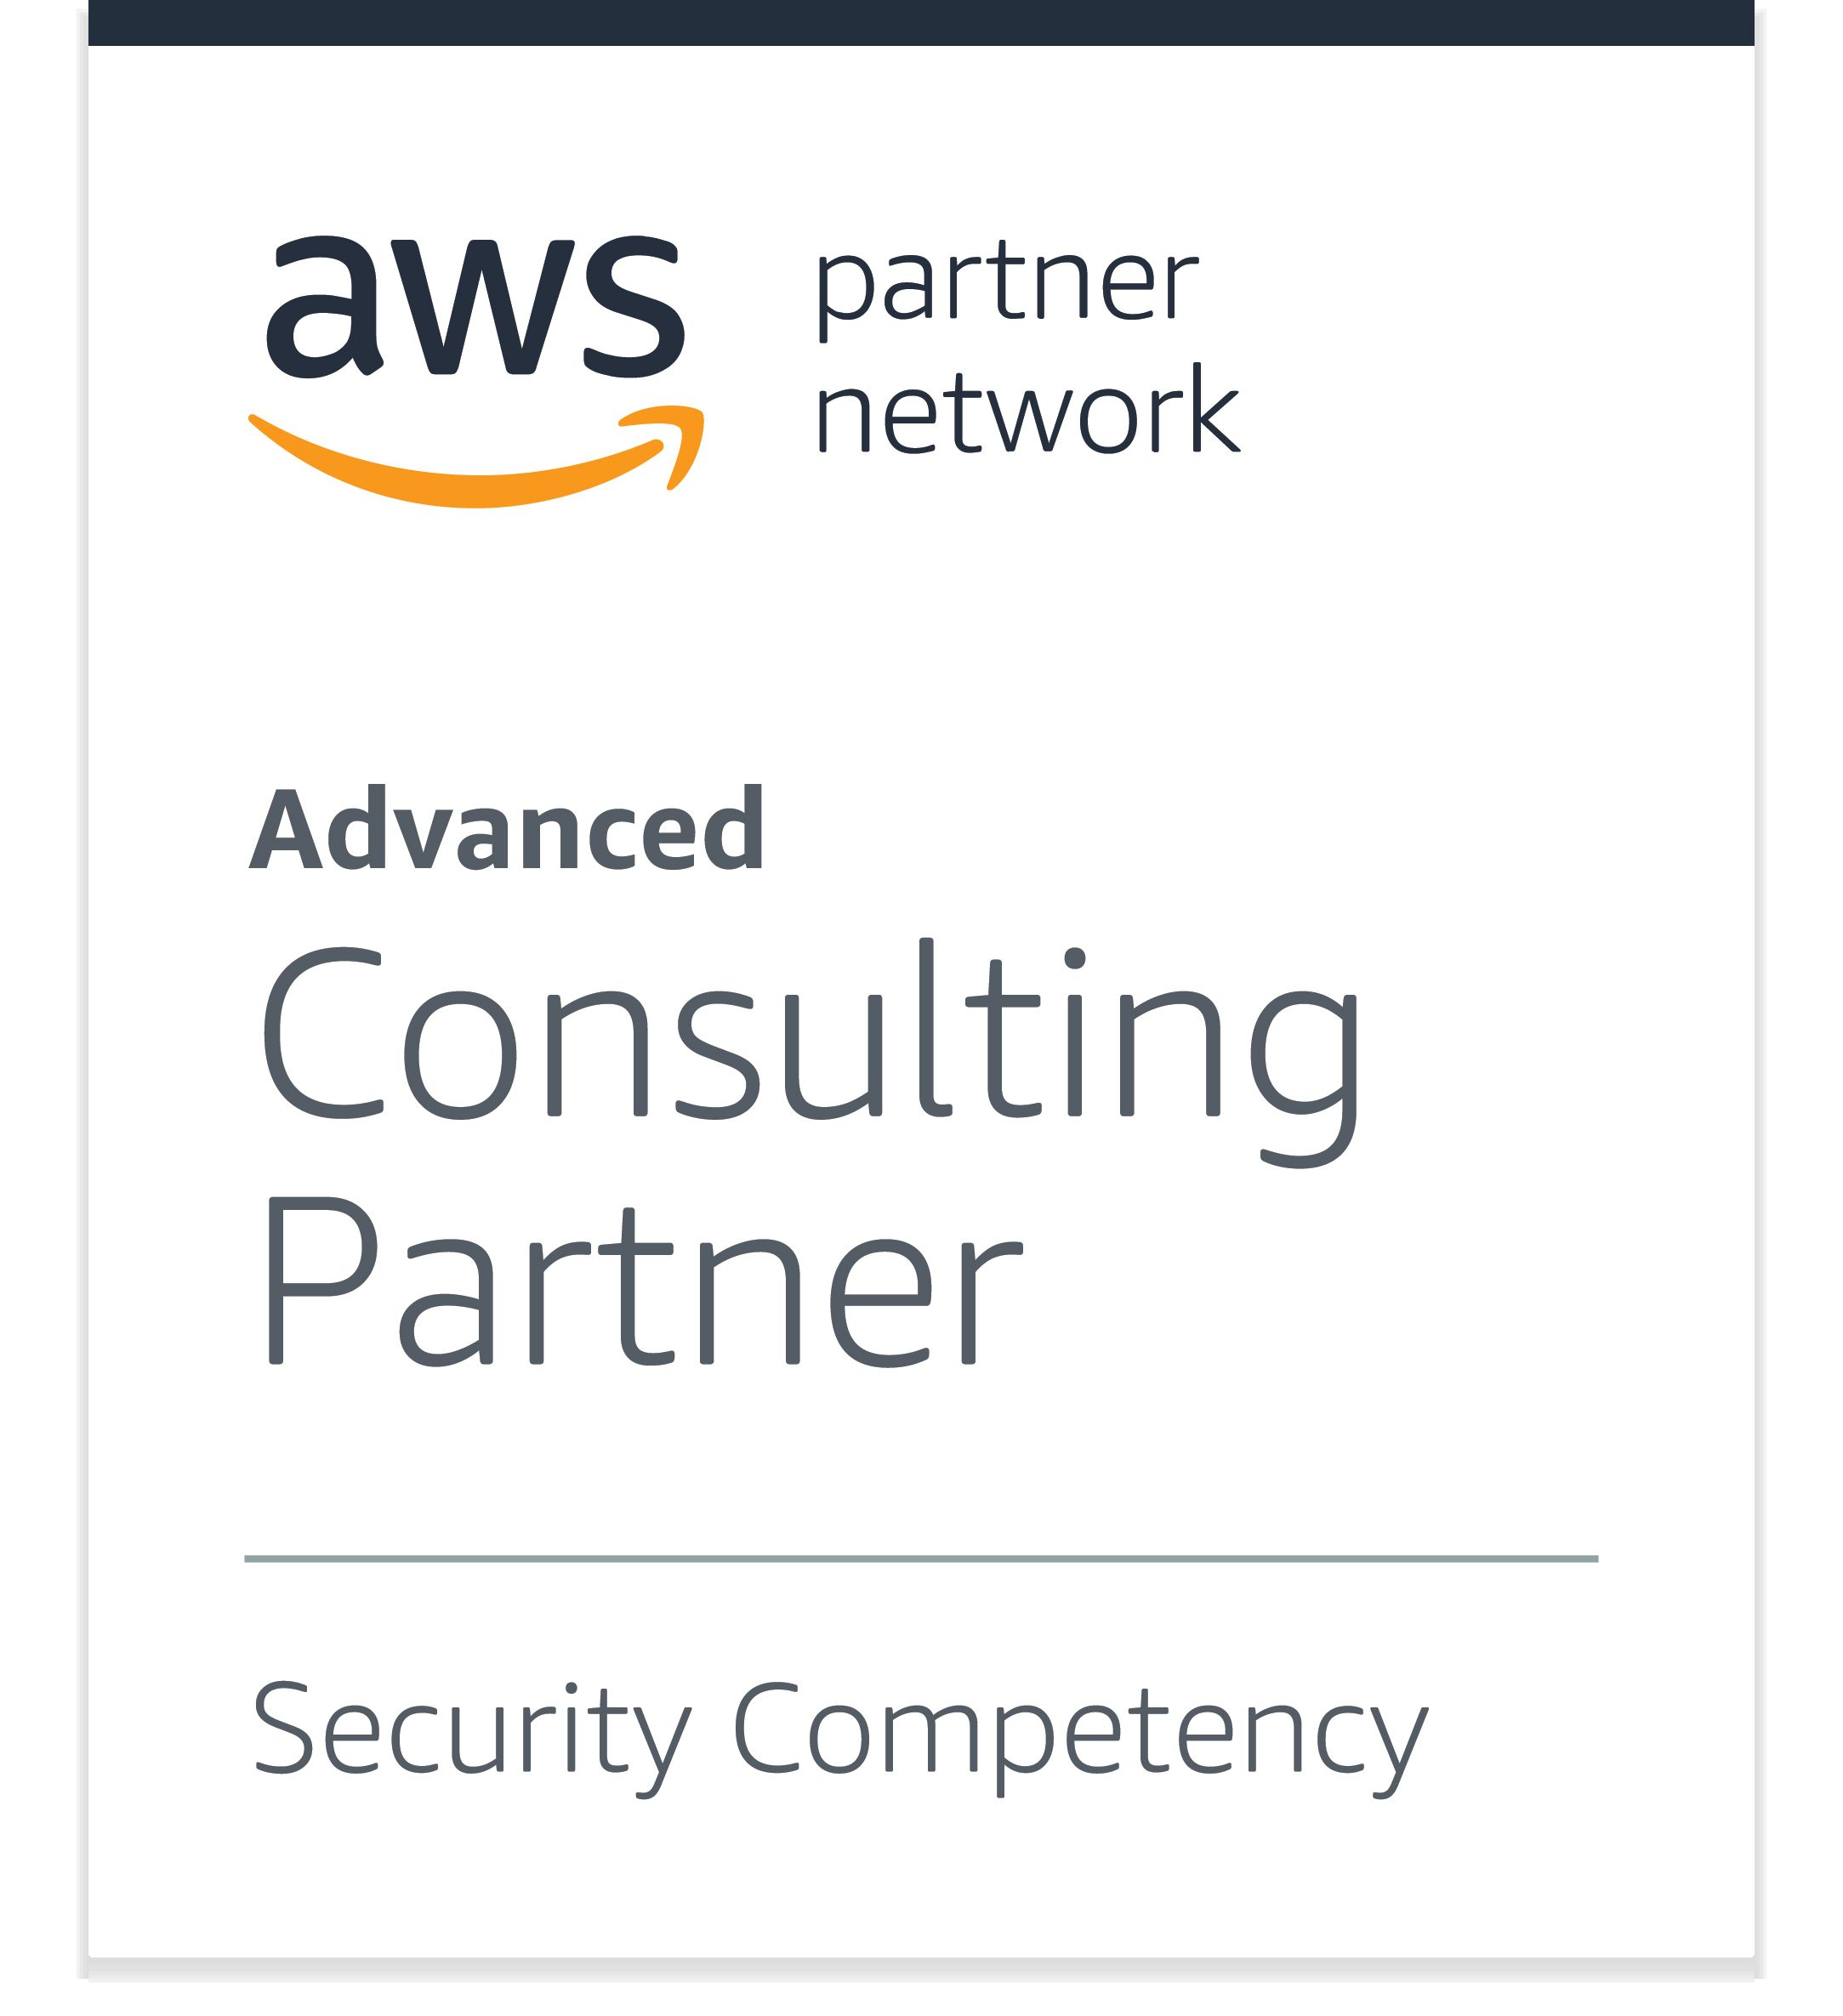 AWS, Advanced Consulting Partner